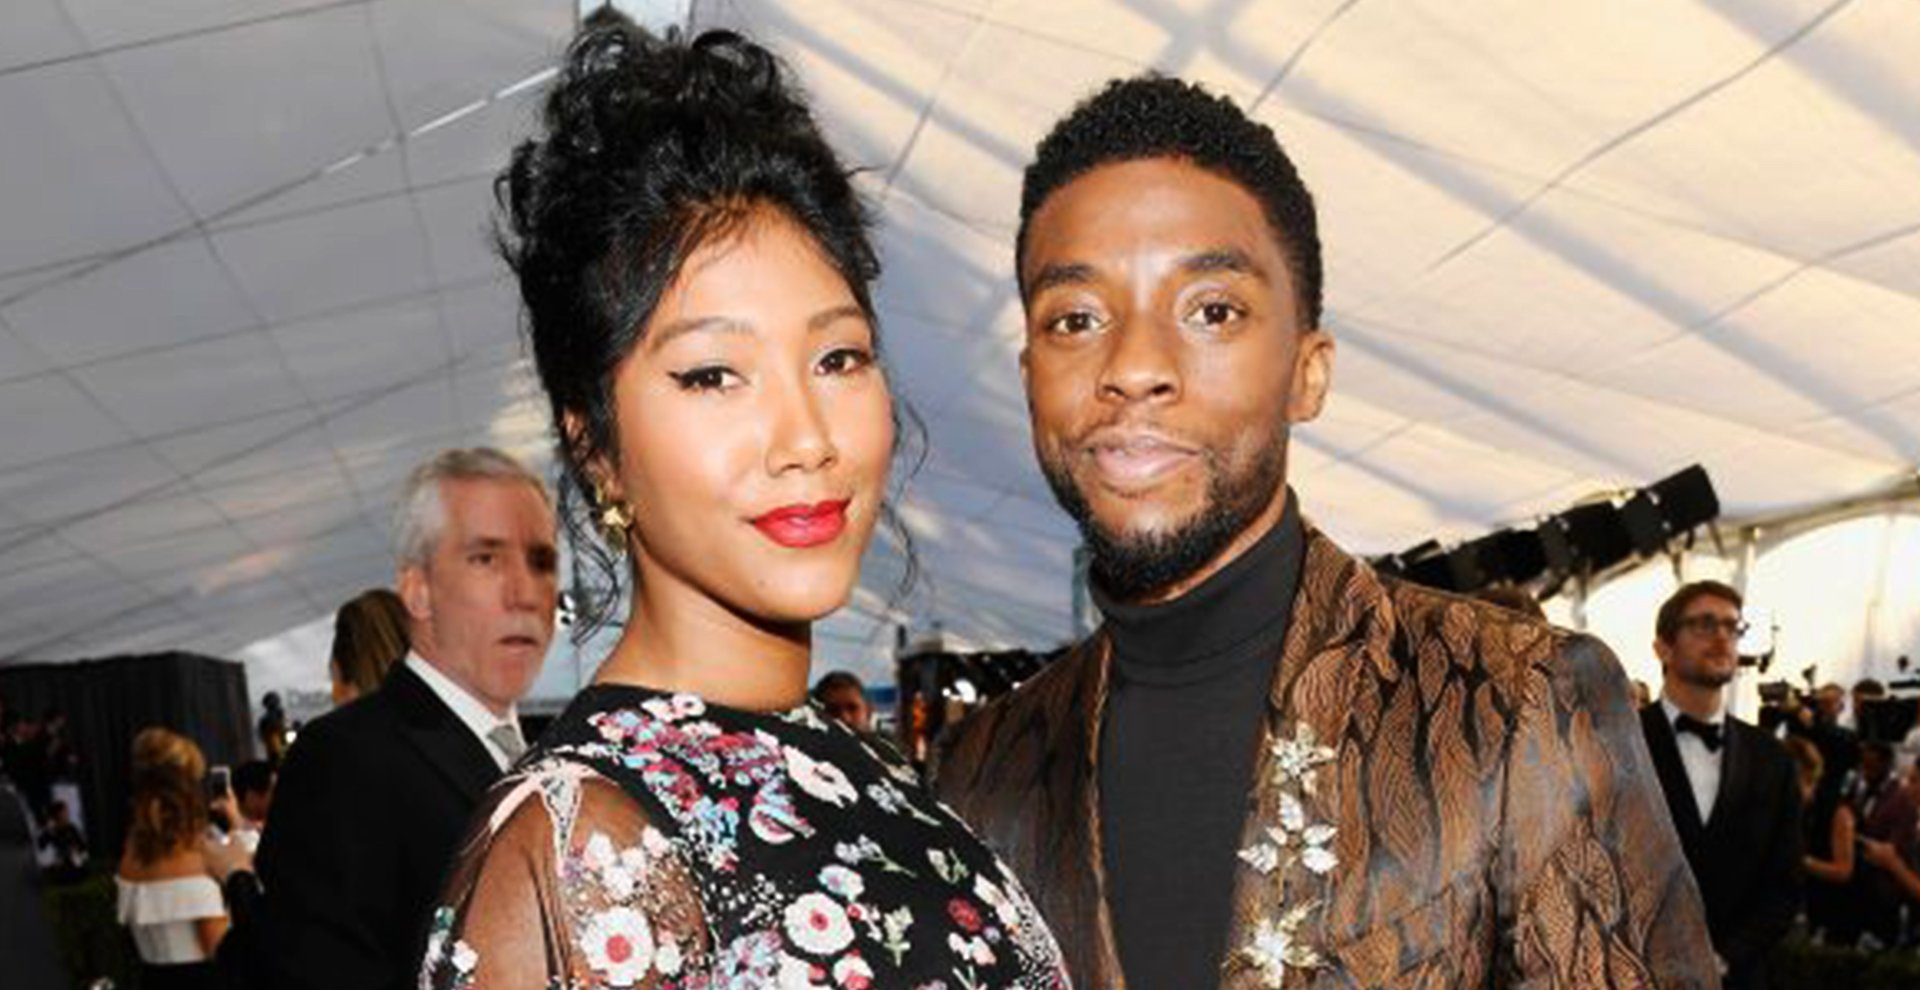 The Love Story Of Chadwick Boseman and Taylor Simone Ledward